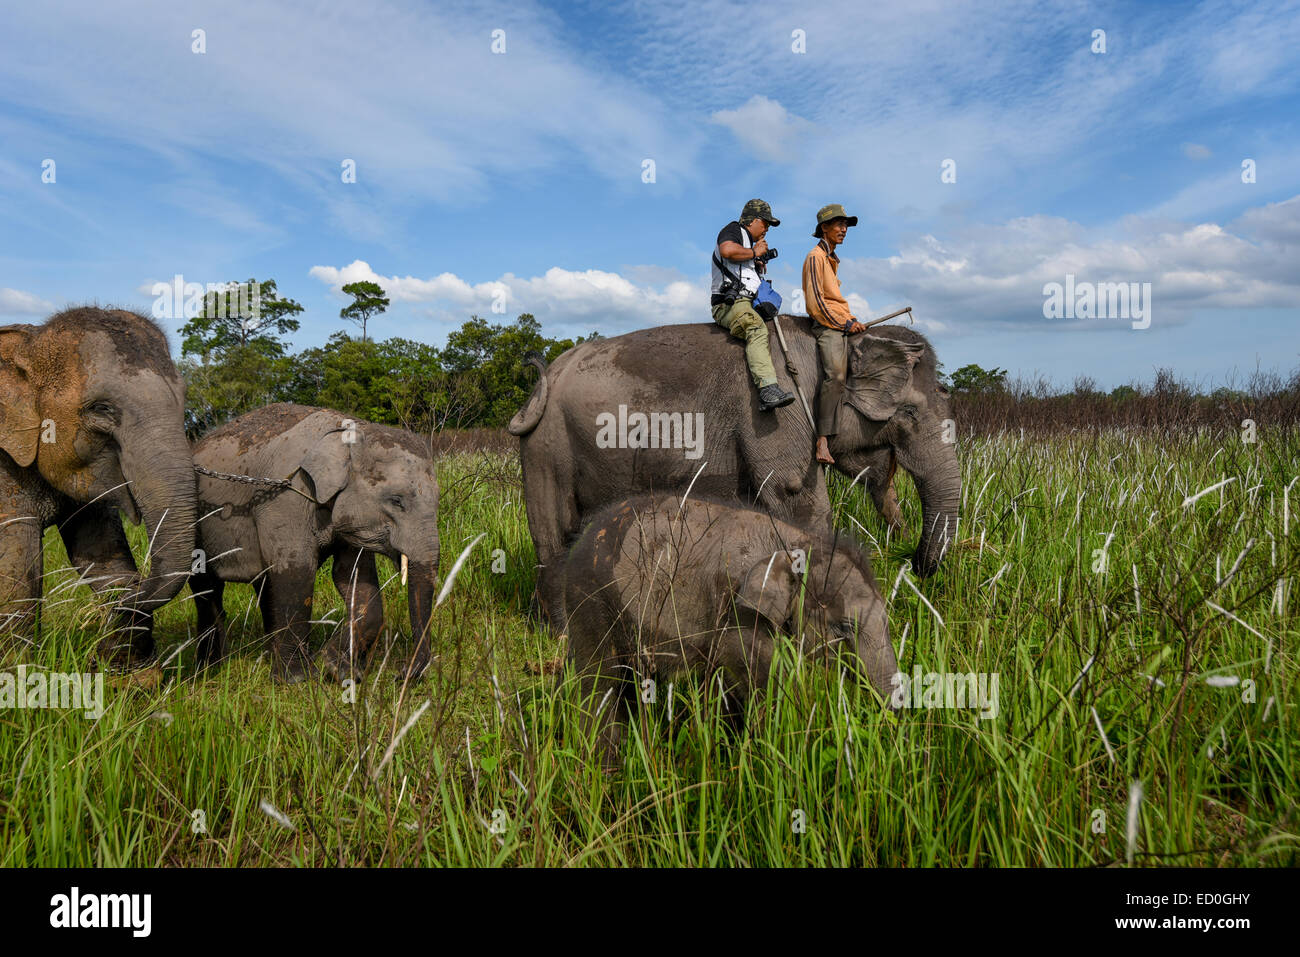 An elephant keeper and a visitor ride with an elephant herd in Way Kambas National Park, Indonesia. © Reynold - Stock Image